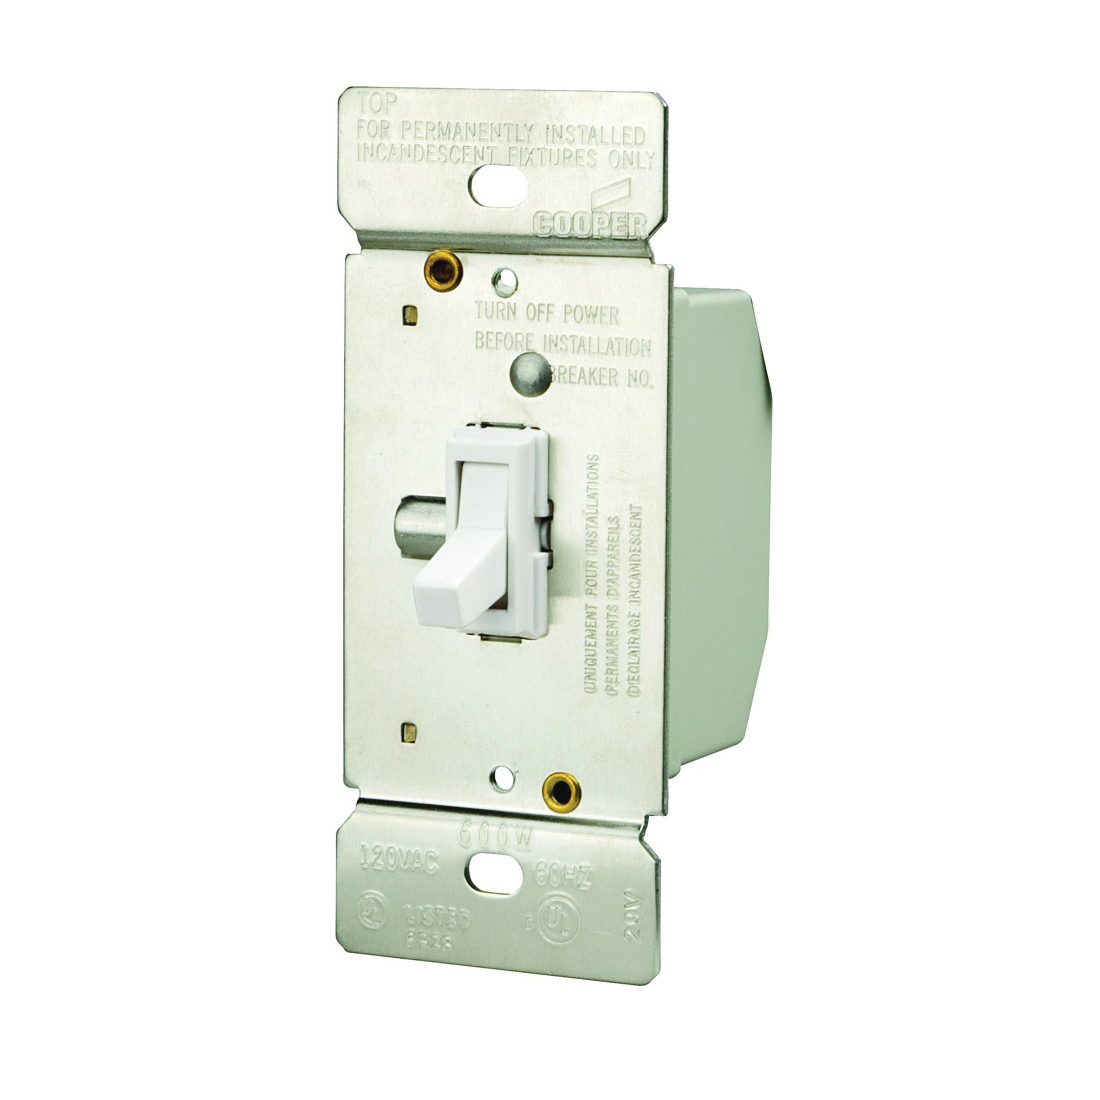 Picture of Eaton Wiring Devices TI306-W-K Toggle Dimmer, 5 A, 120 V, 600 W, CFL, Halogen, Incandescent, LED Lamp, 3-Way